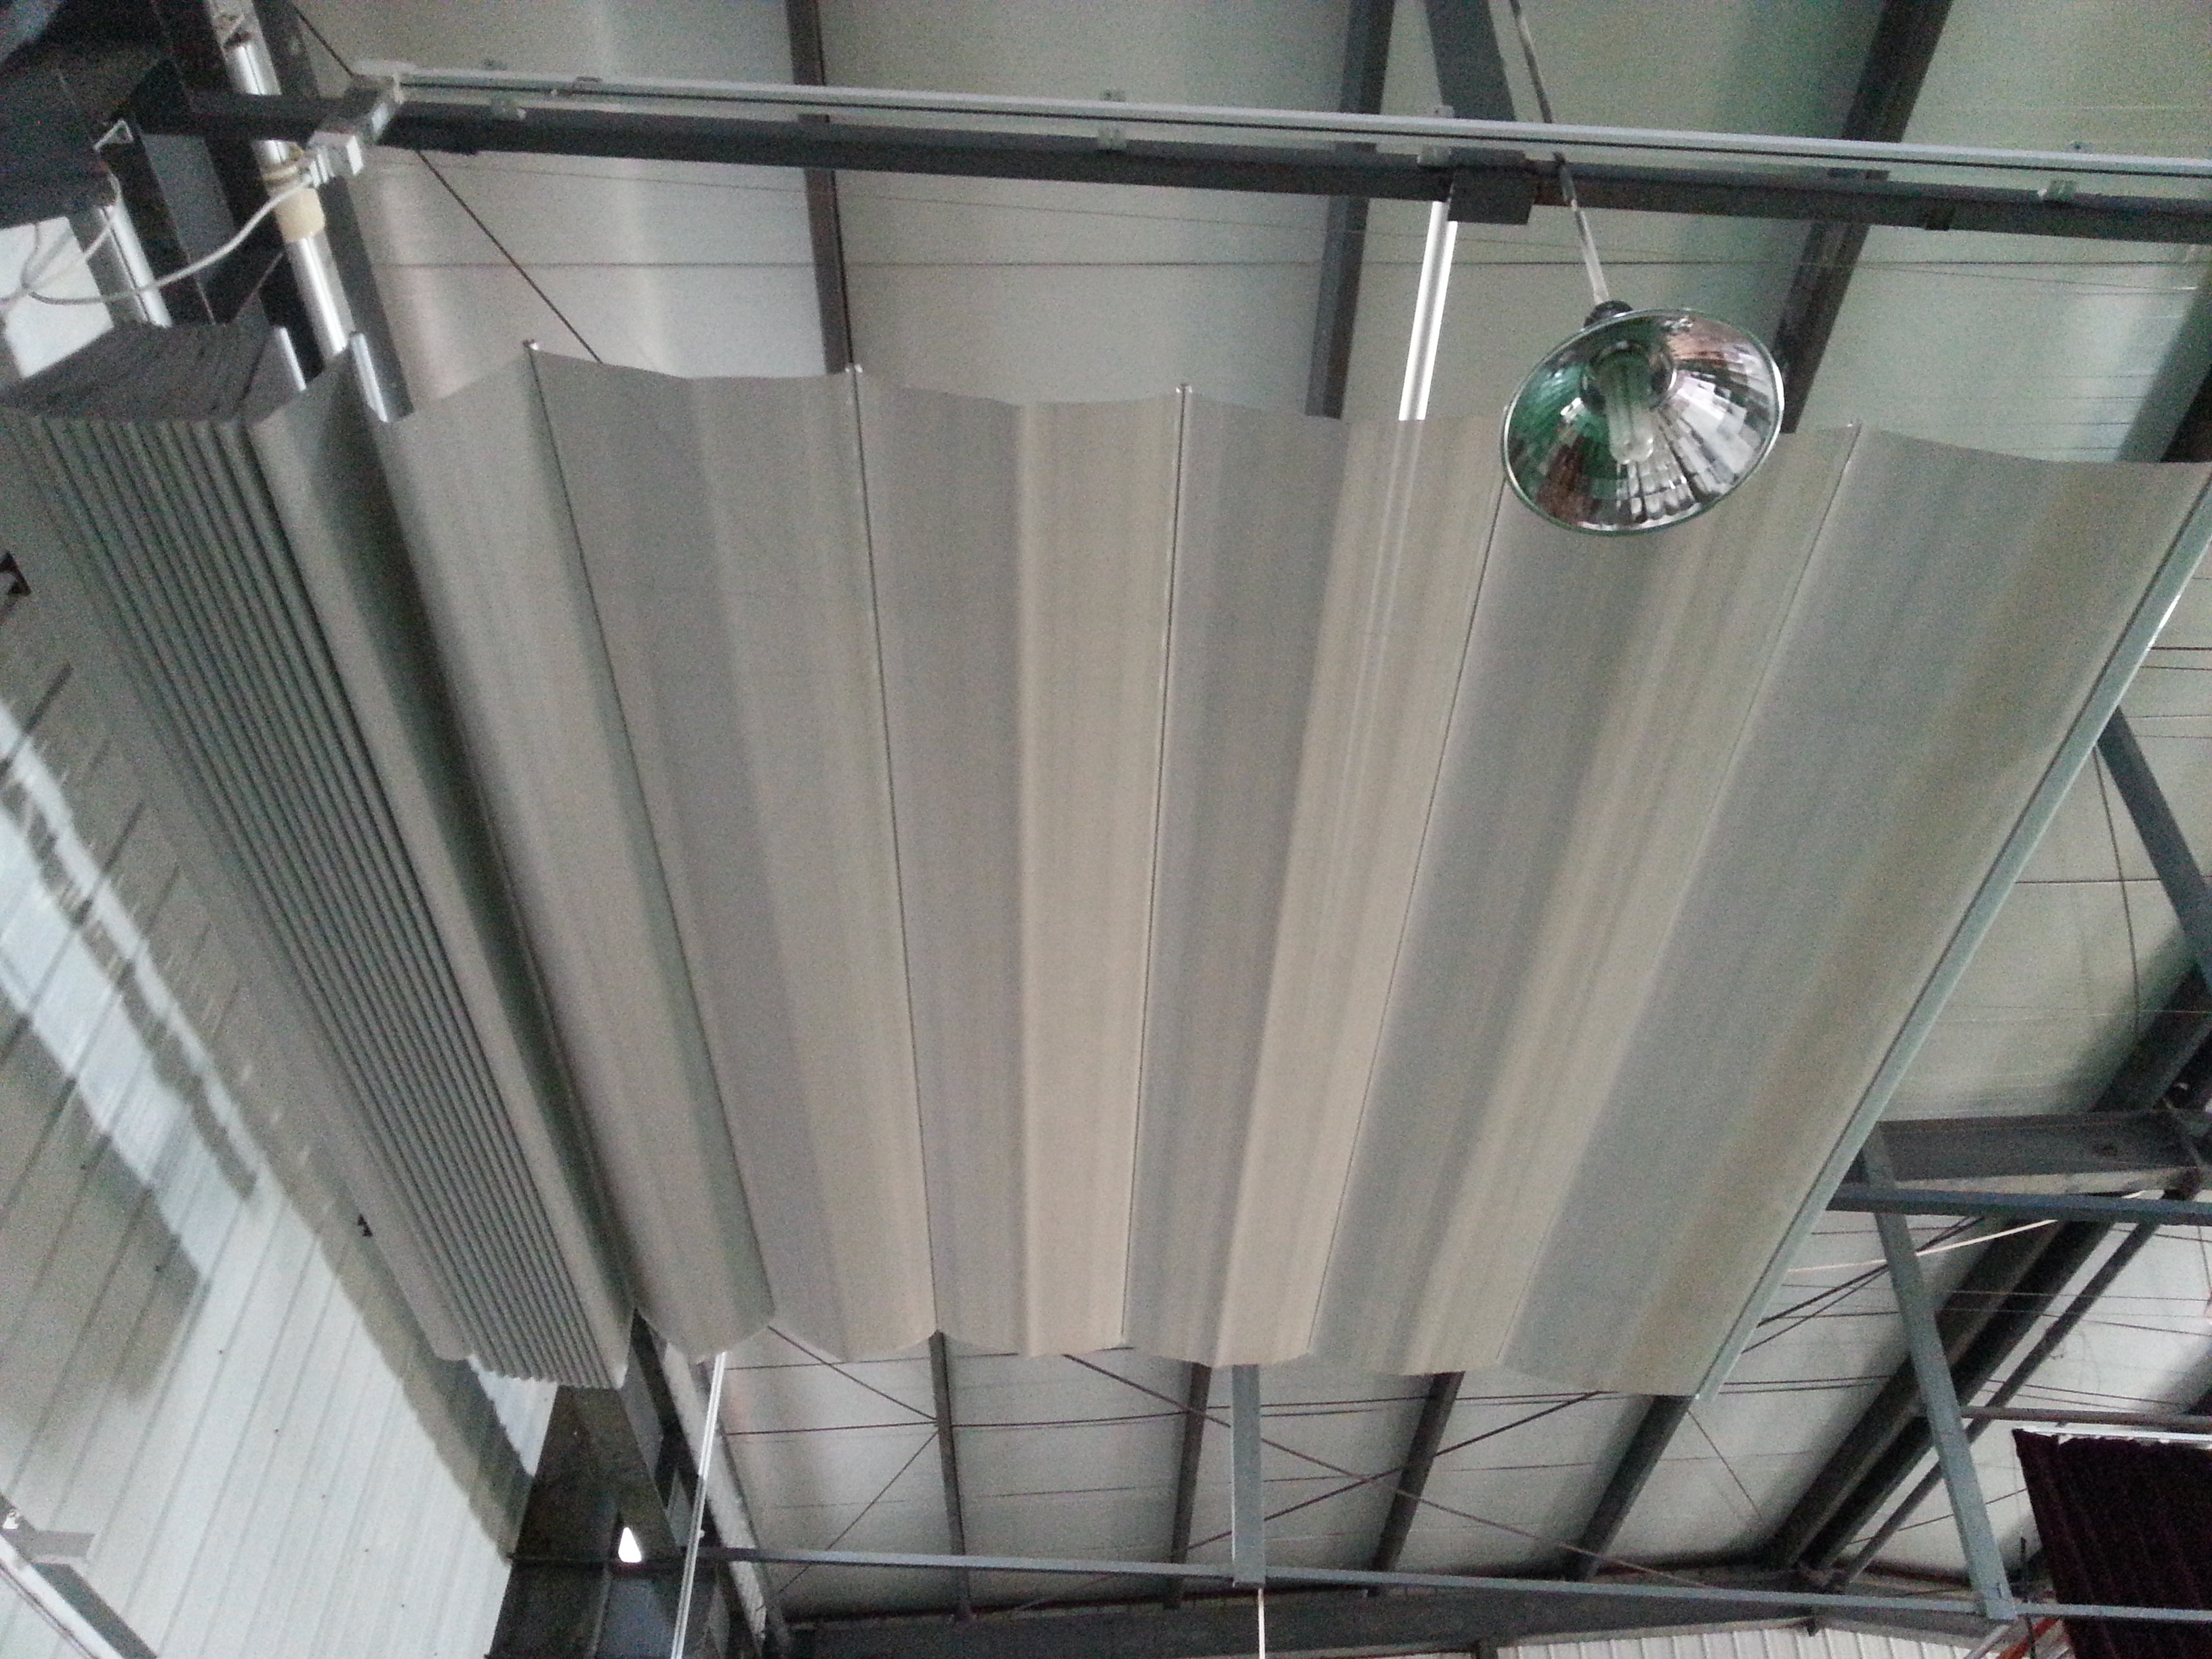 Electric Foldaway Roof Blinds Ceiling Blinds Skylight Canopy Blinds